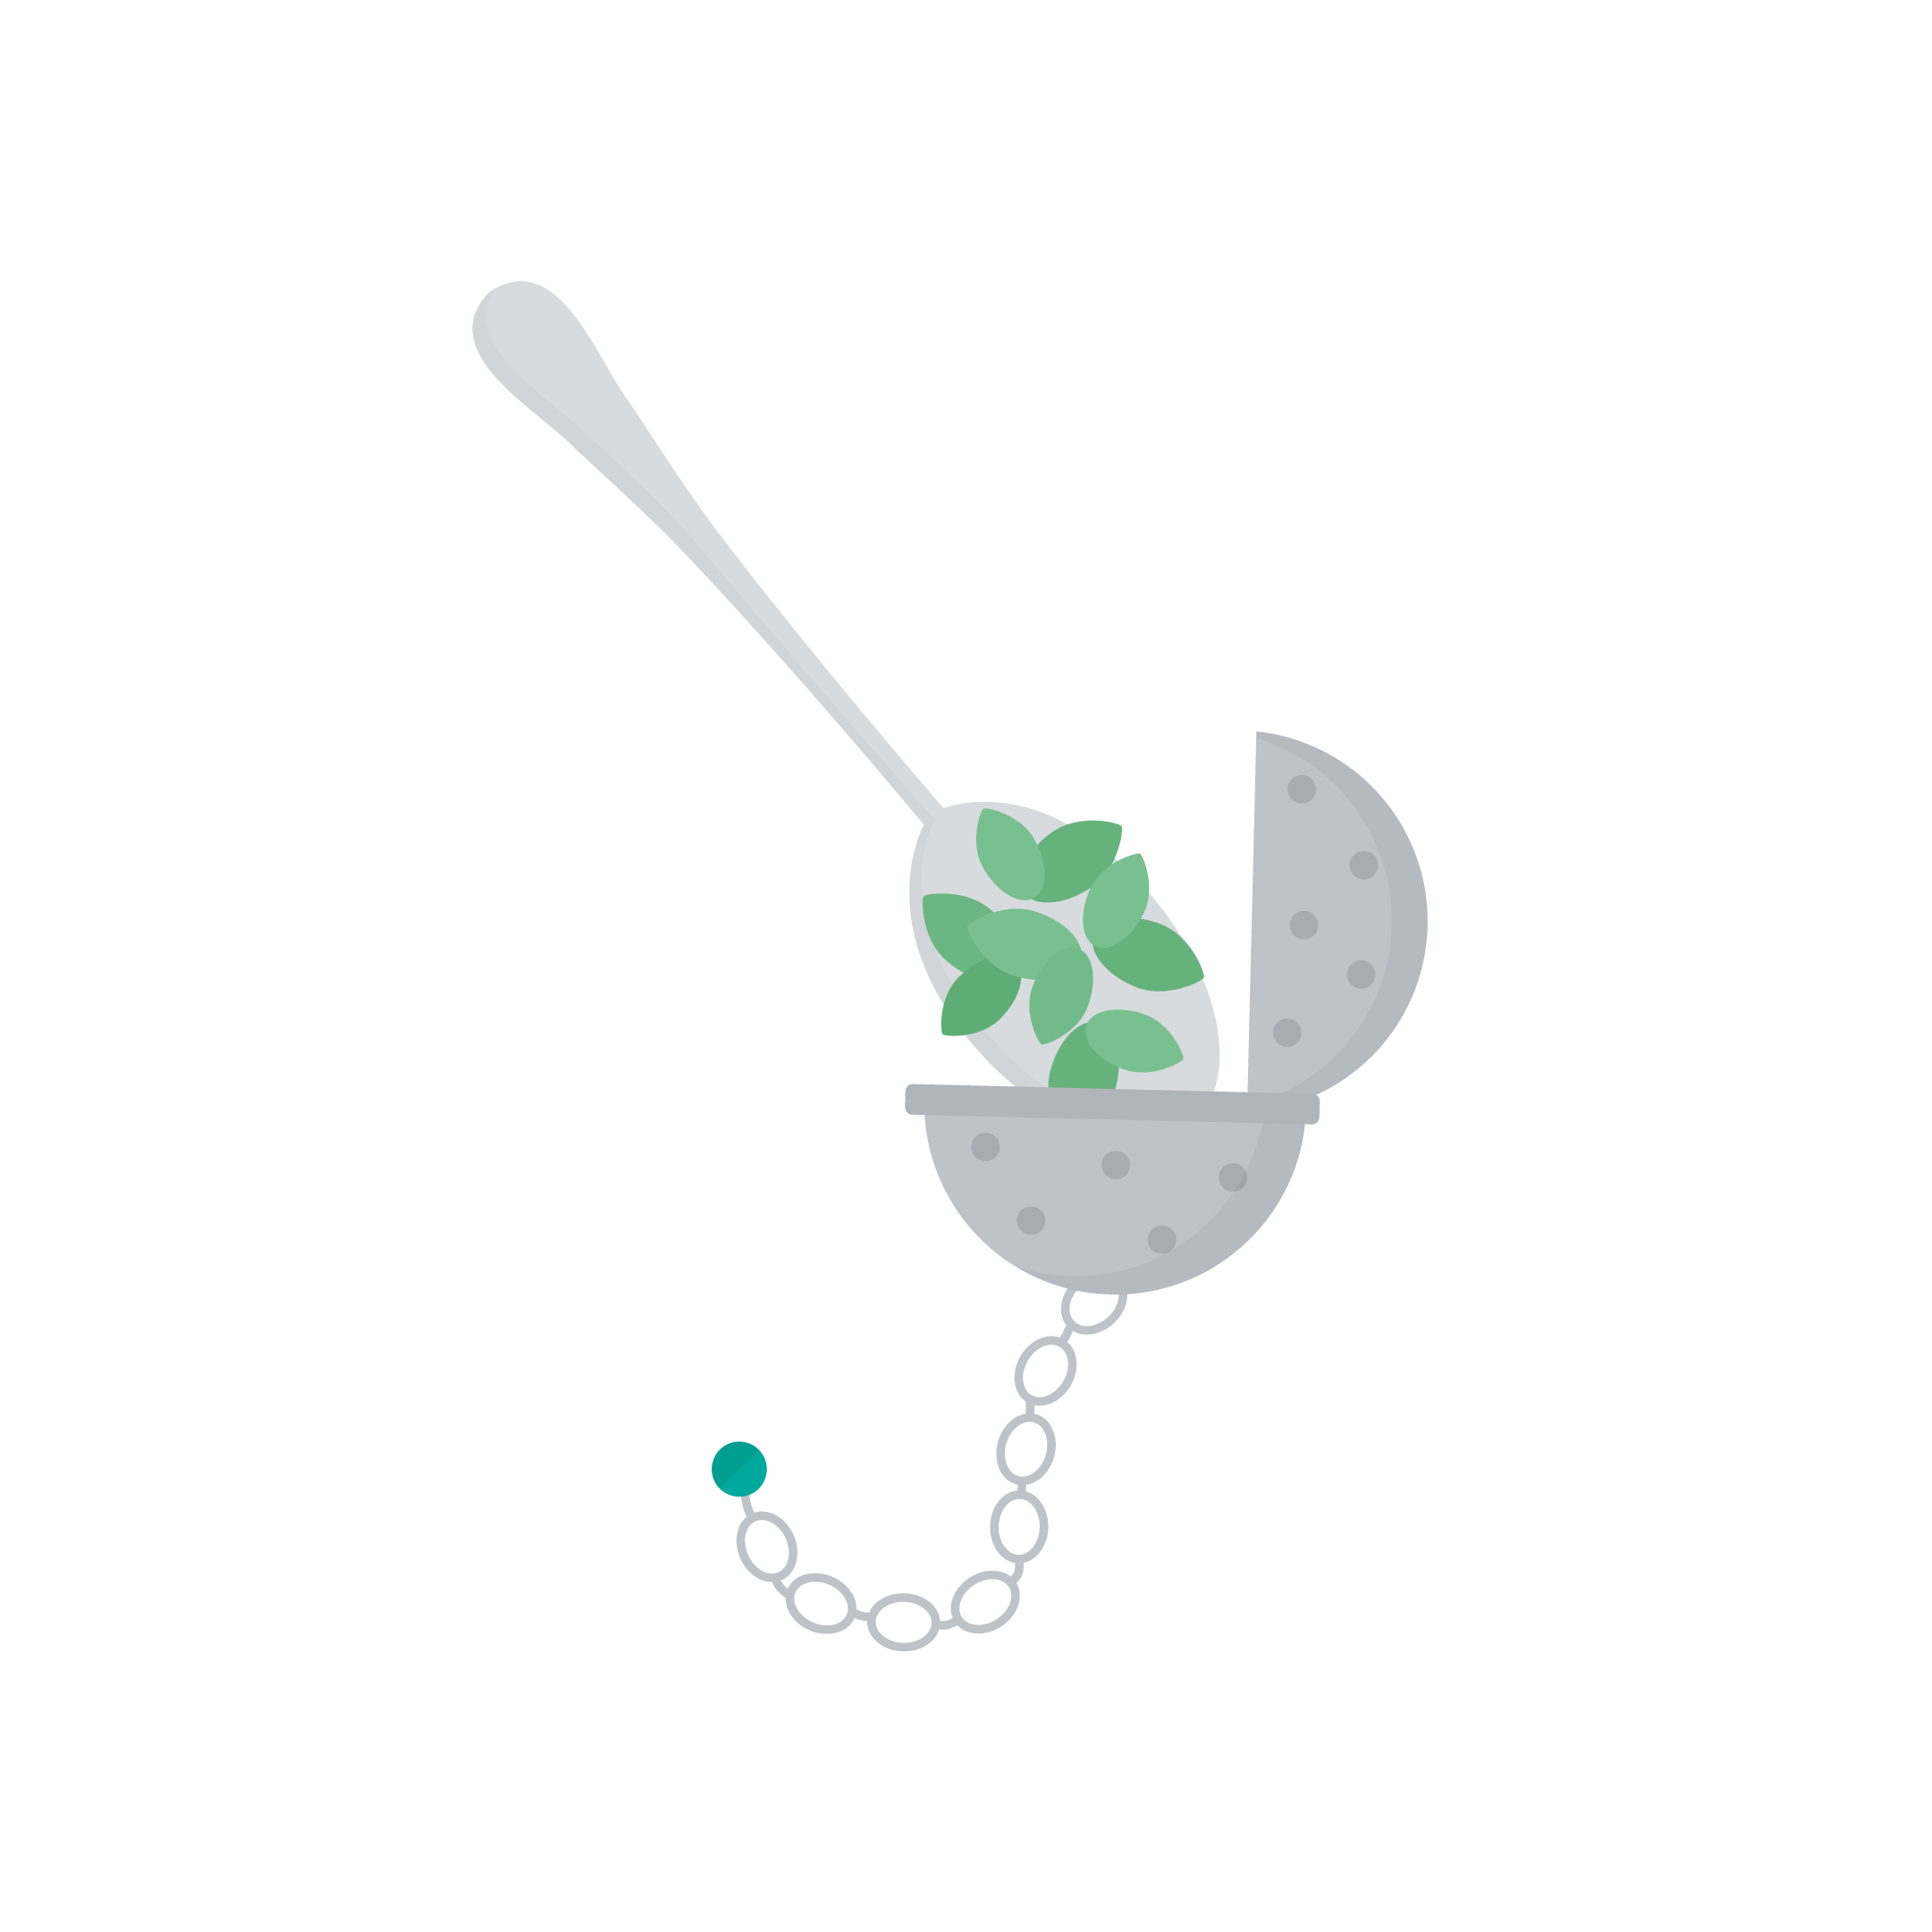 Vector illustration of a spoon adding a loose leaf tea into a tea infuser ball in flat design style